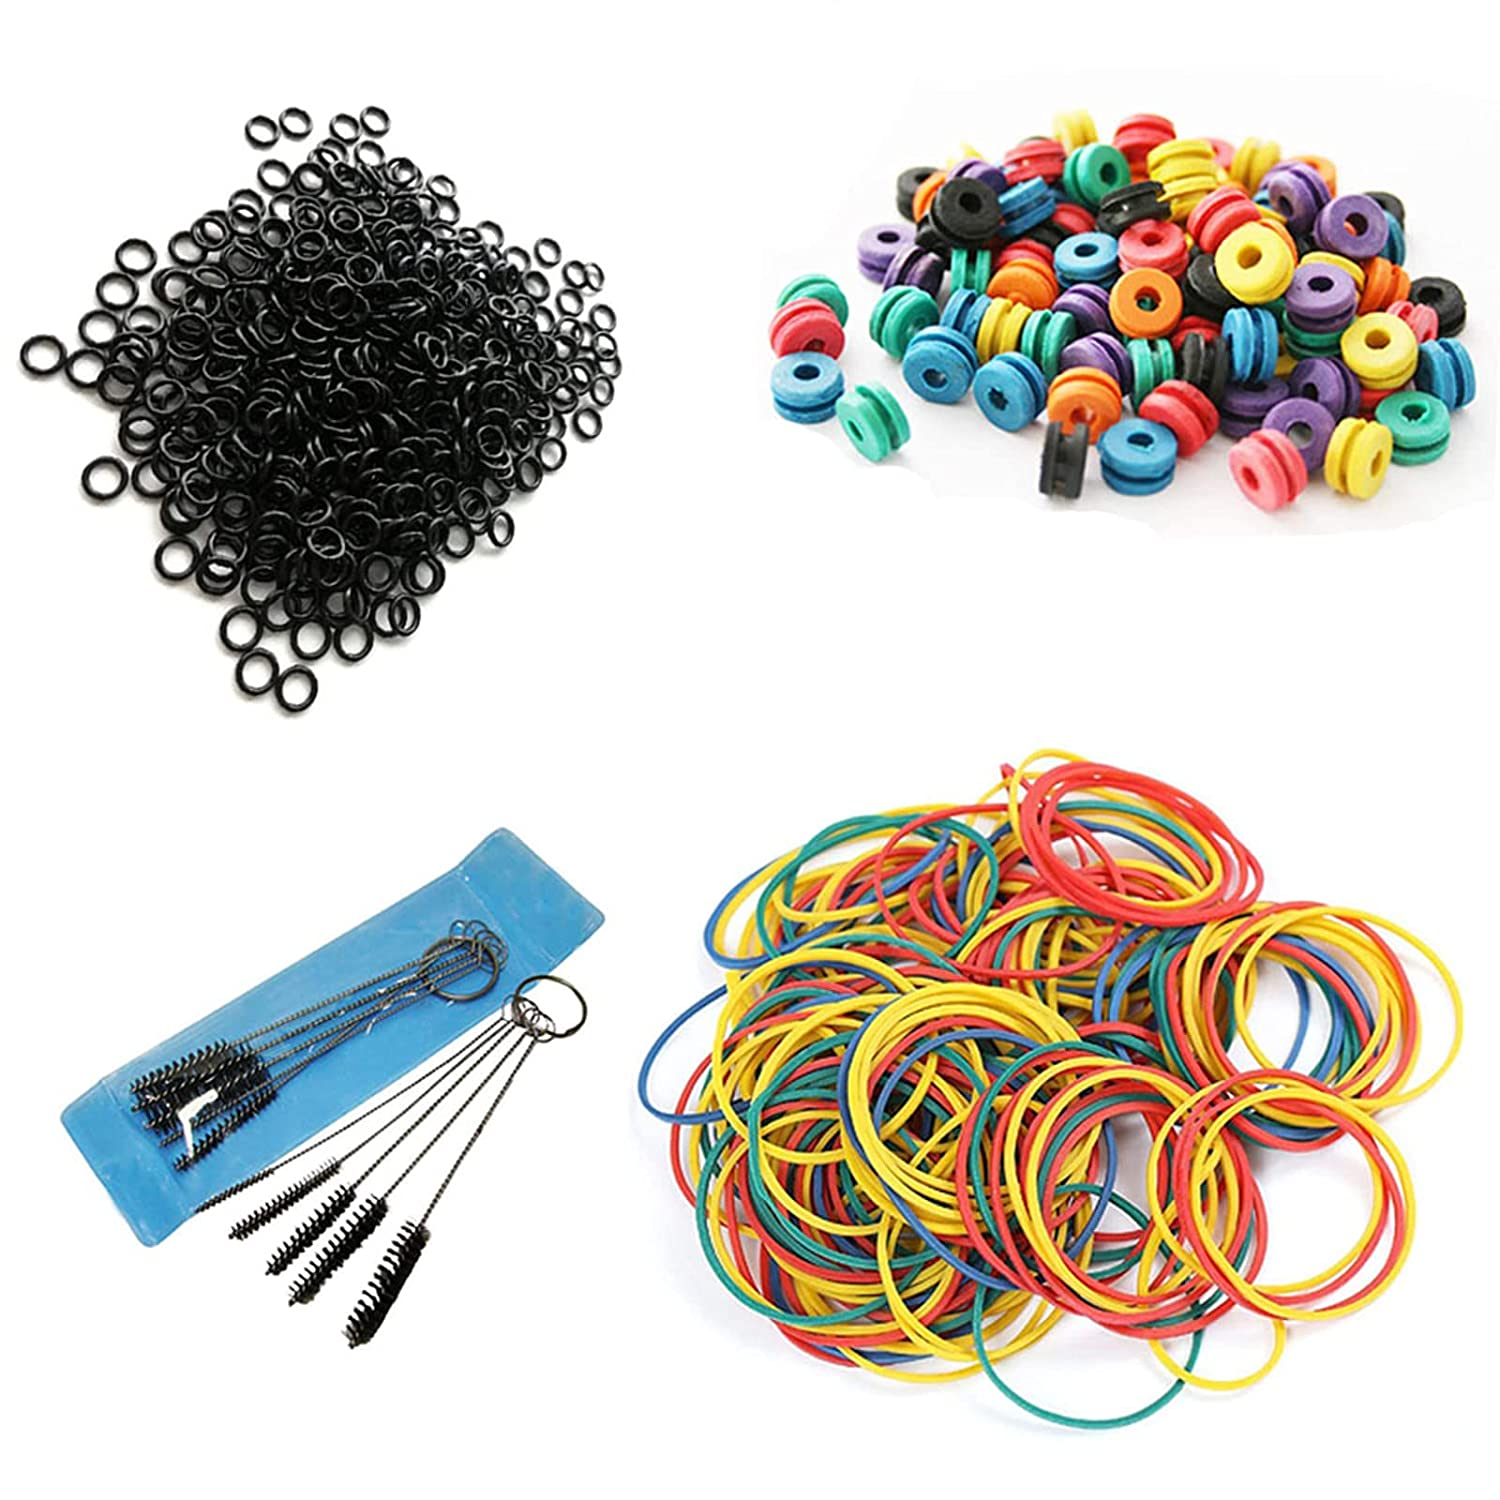 Brand new Tattoo Machine Part Canethy 100pcs T Bands Rubber Easy-to-use